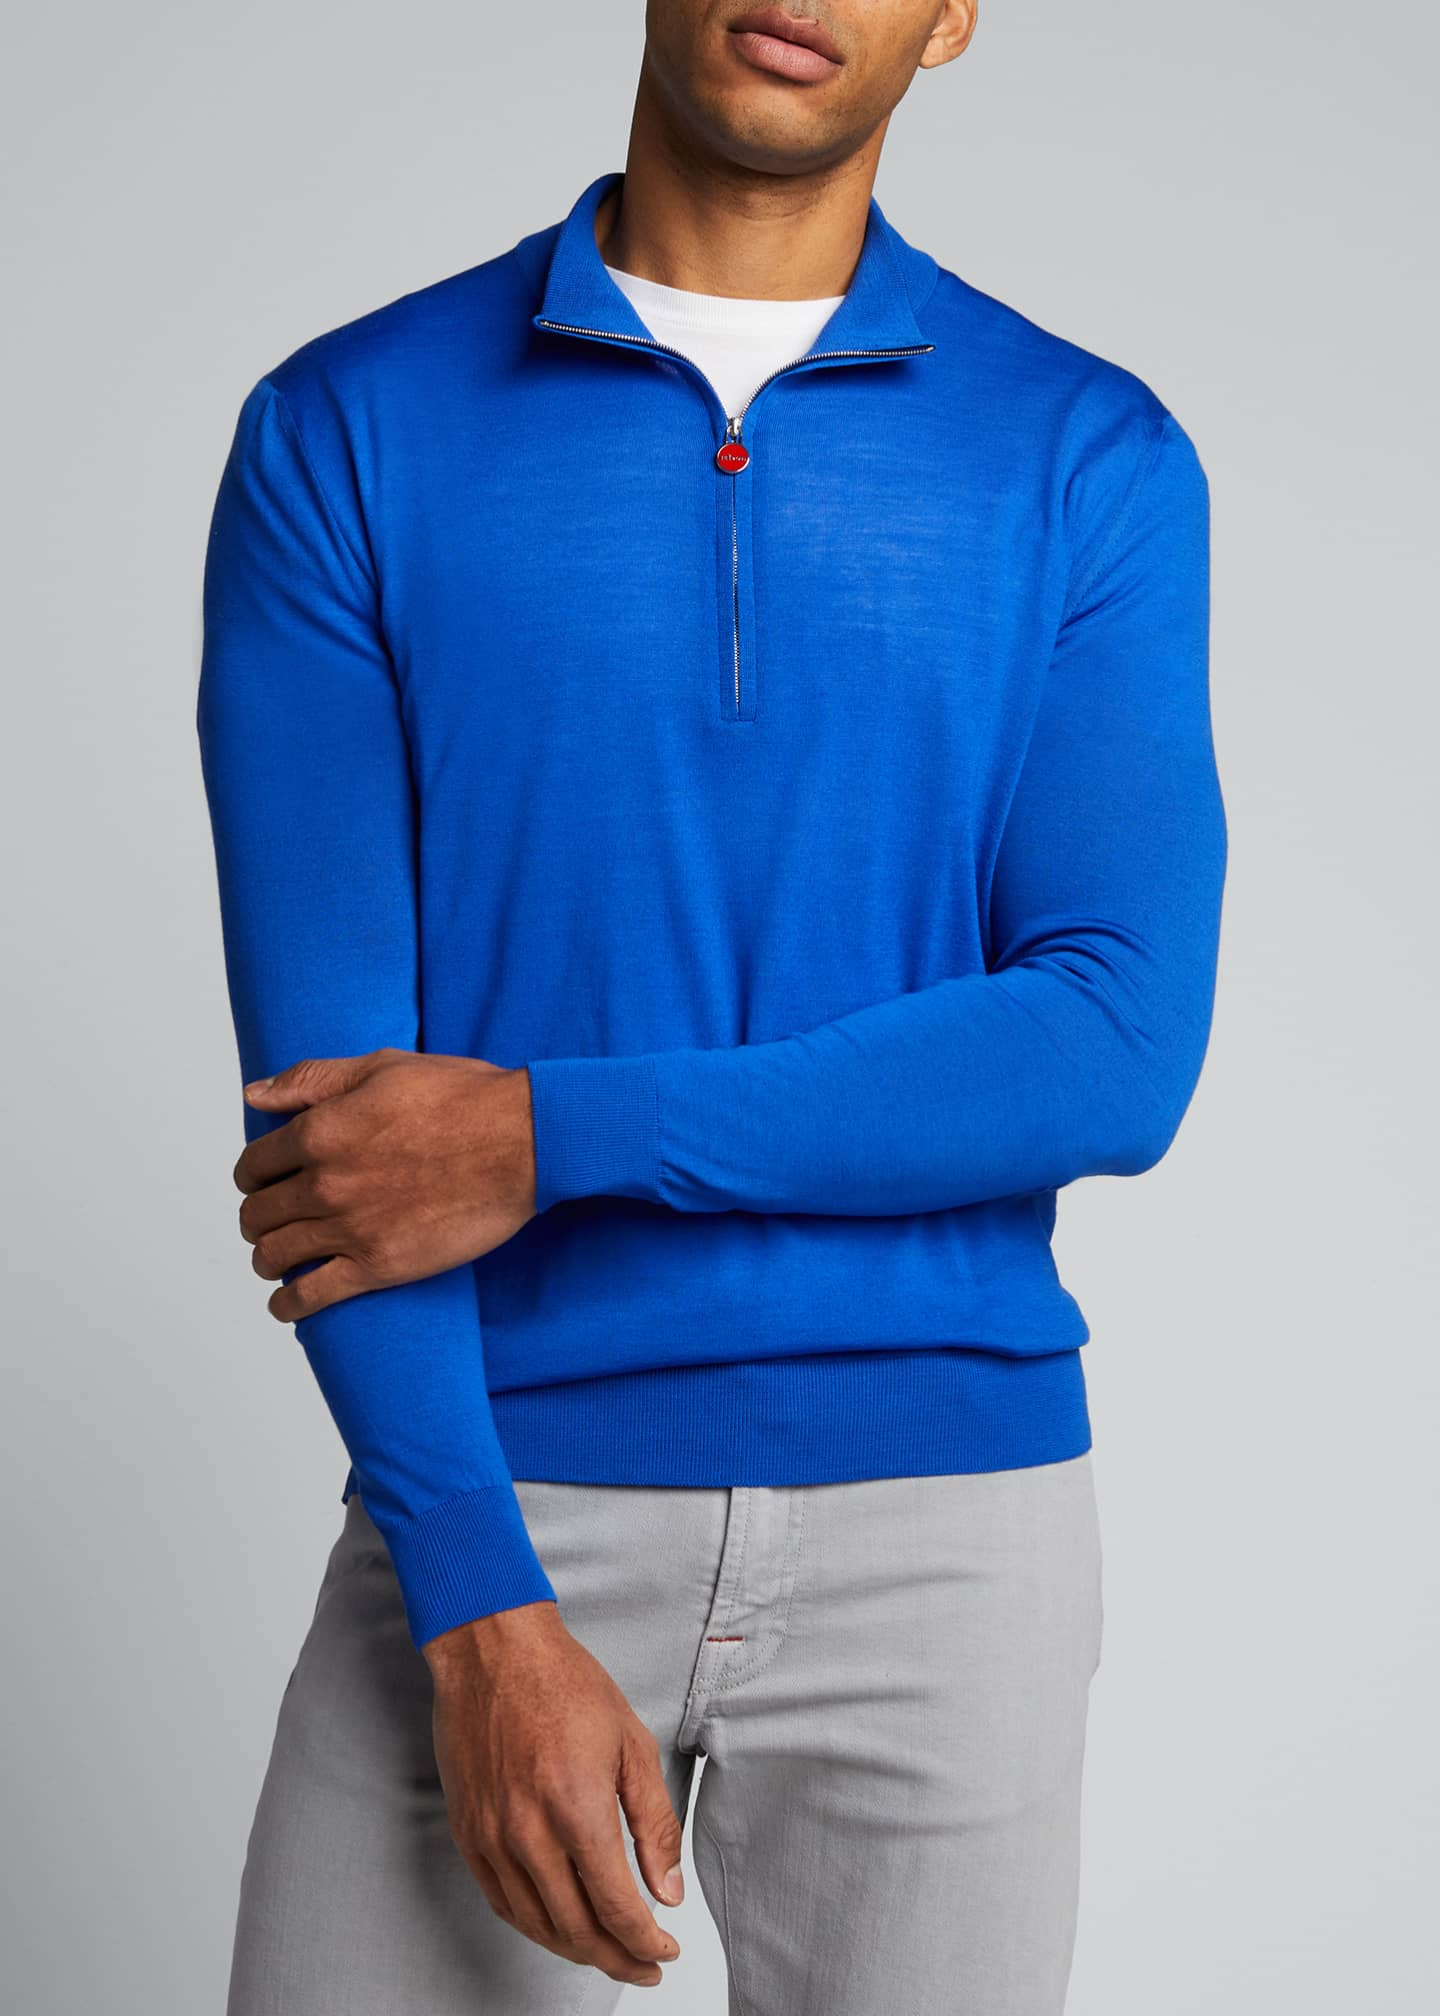 Image 3 of 5: Men's Quarter-Zip Wool Sweater